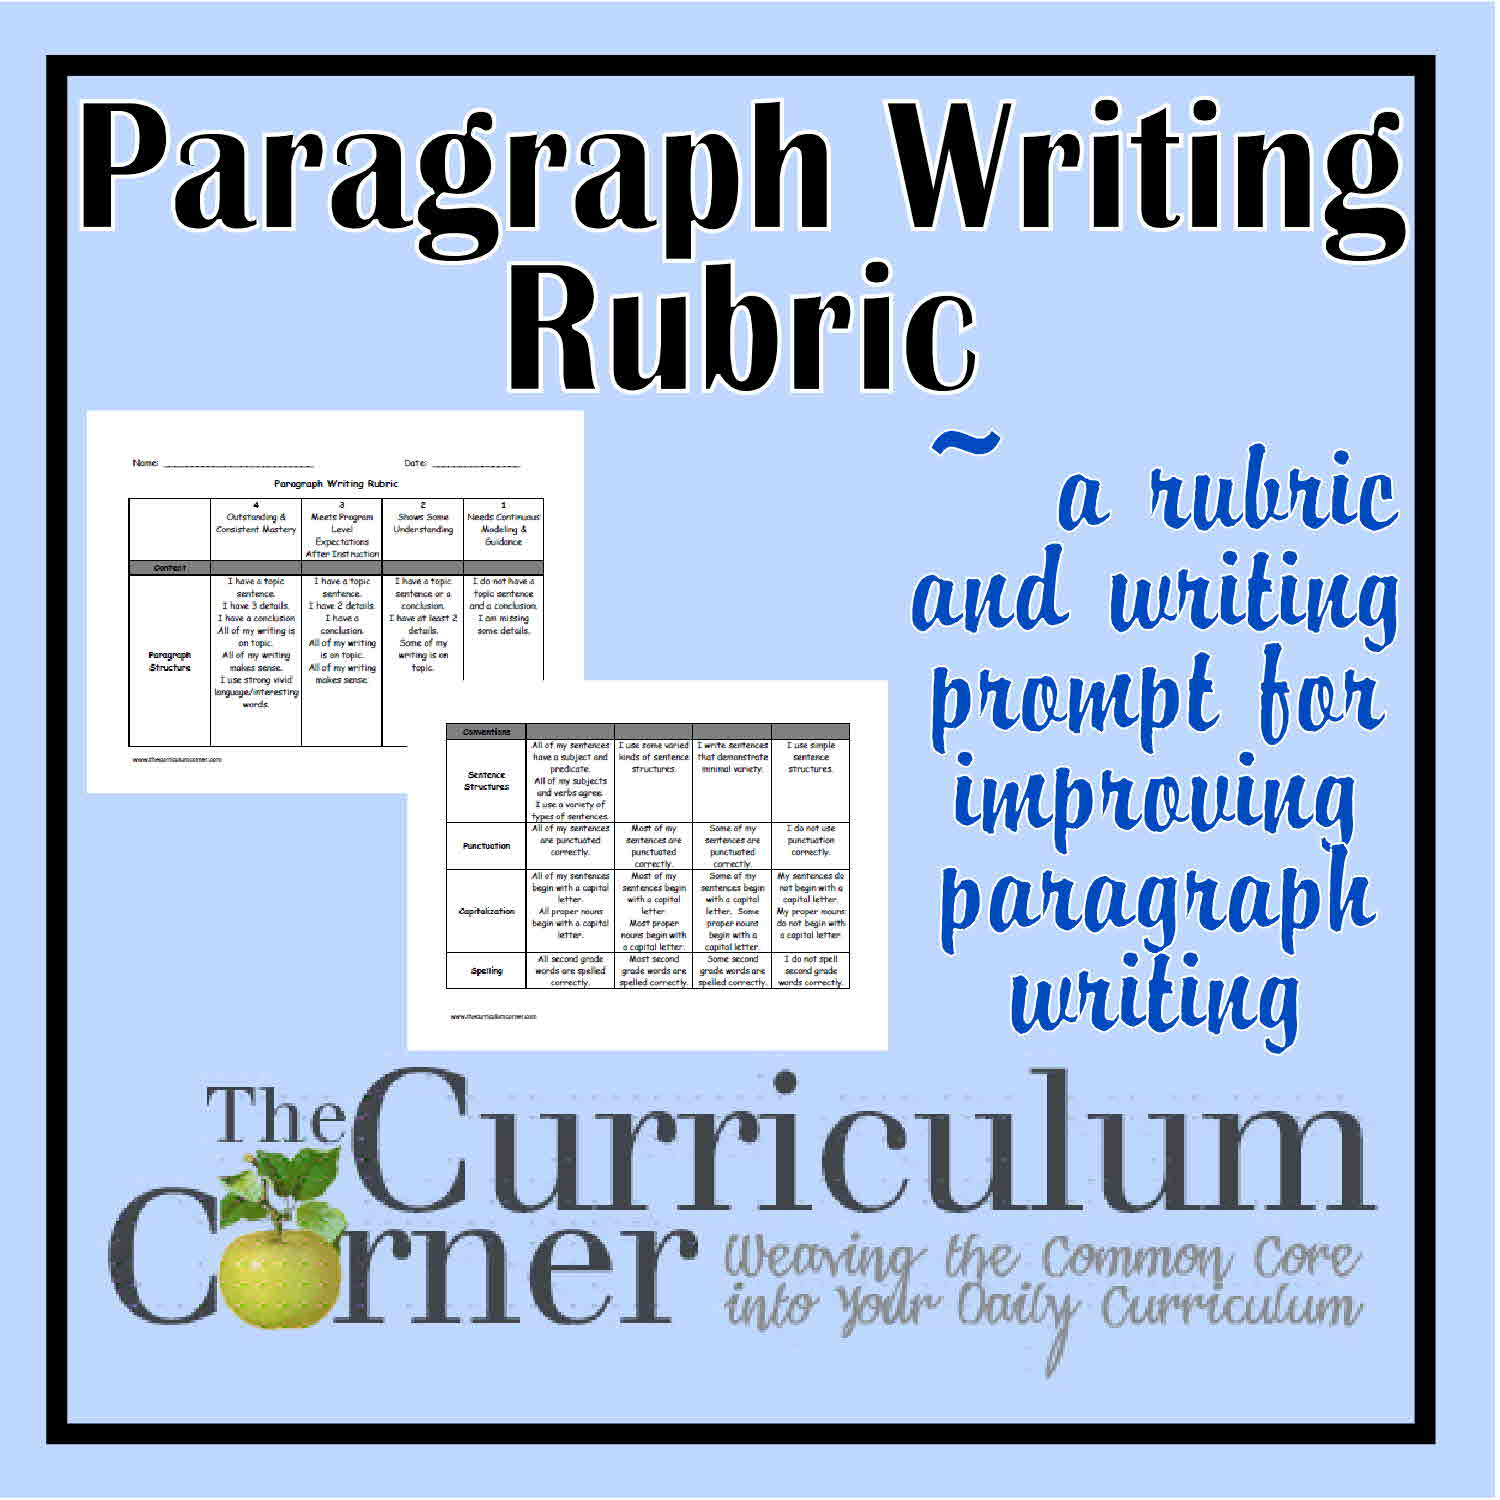 five paragraph essay rubric 7th grade Five paragraph essay outline the five-paragraph essay, one of the most frequently given assignments in higher education, is a fairly simple method of writing composition that most undergraduate students will have to produce many times throughout their academic careers.